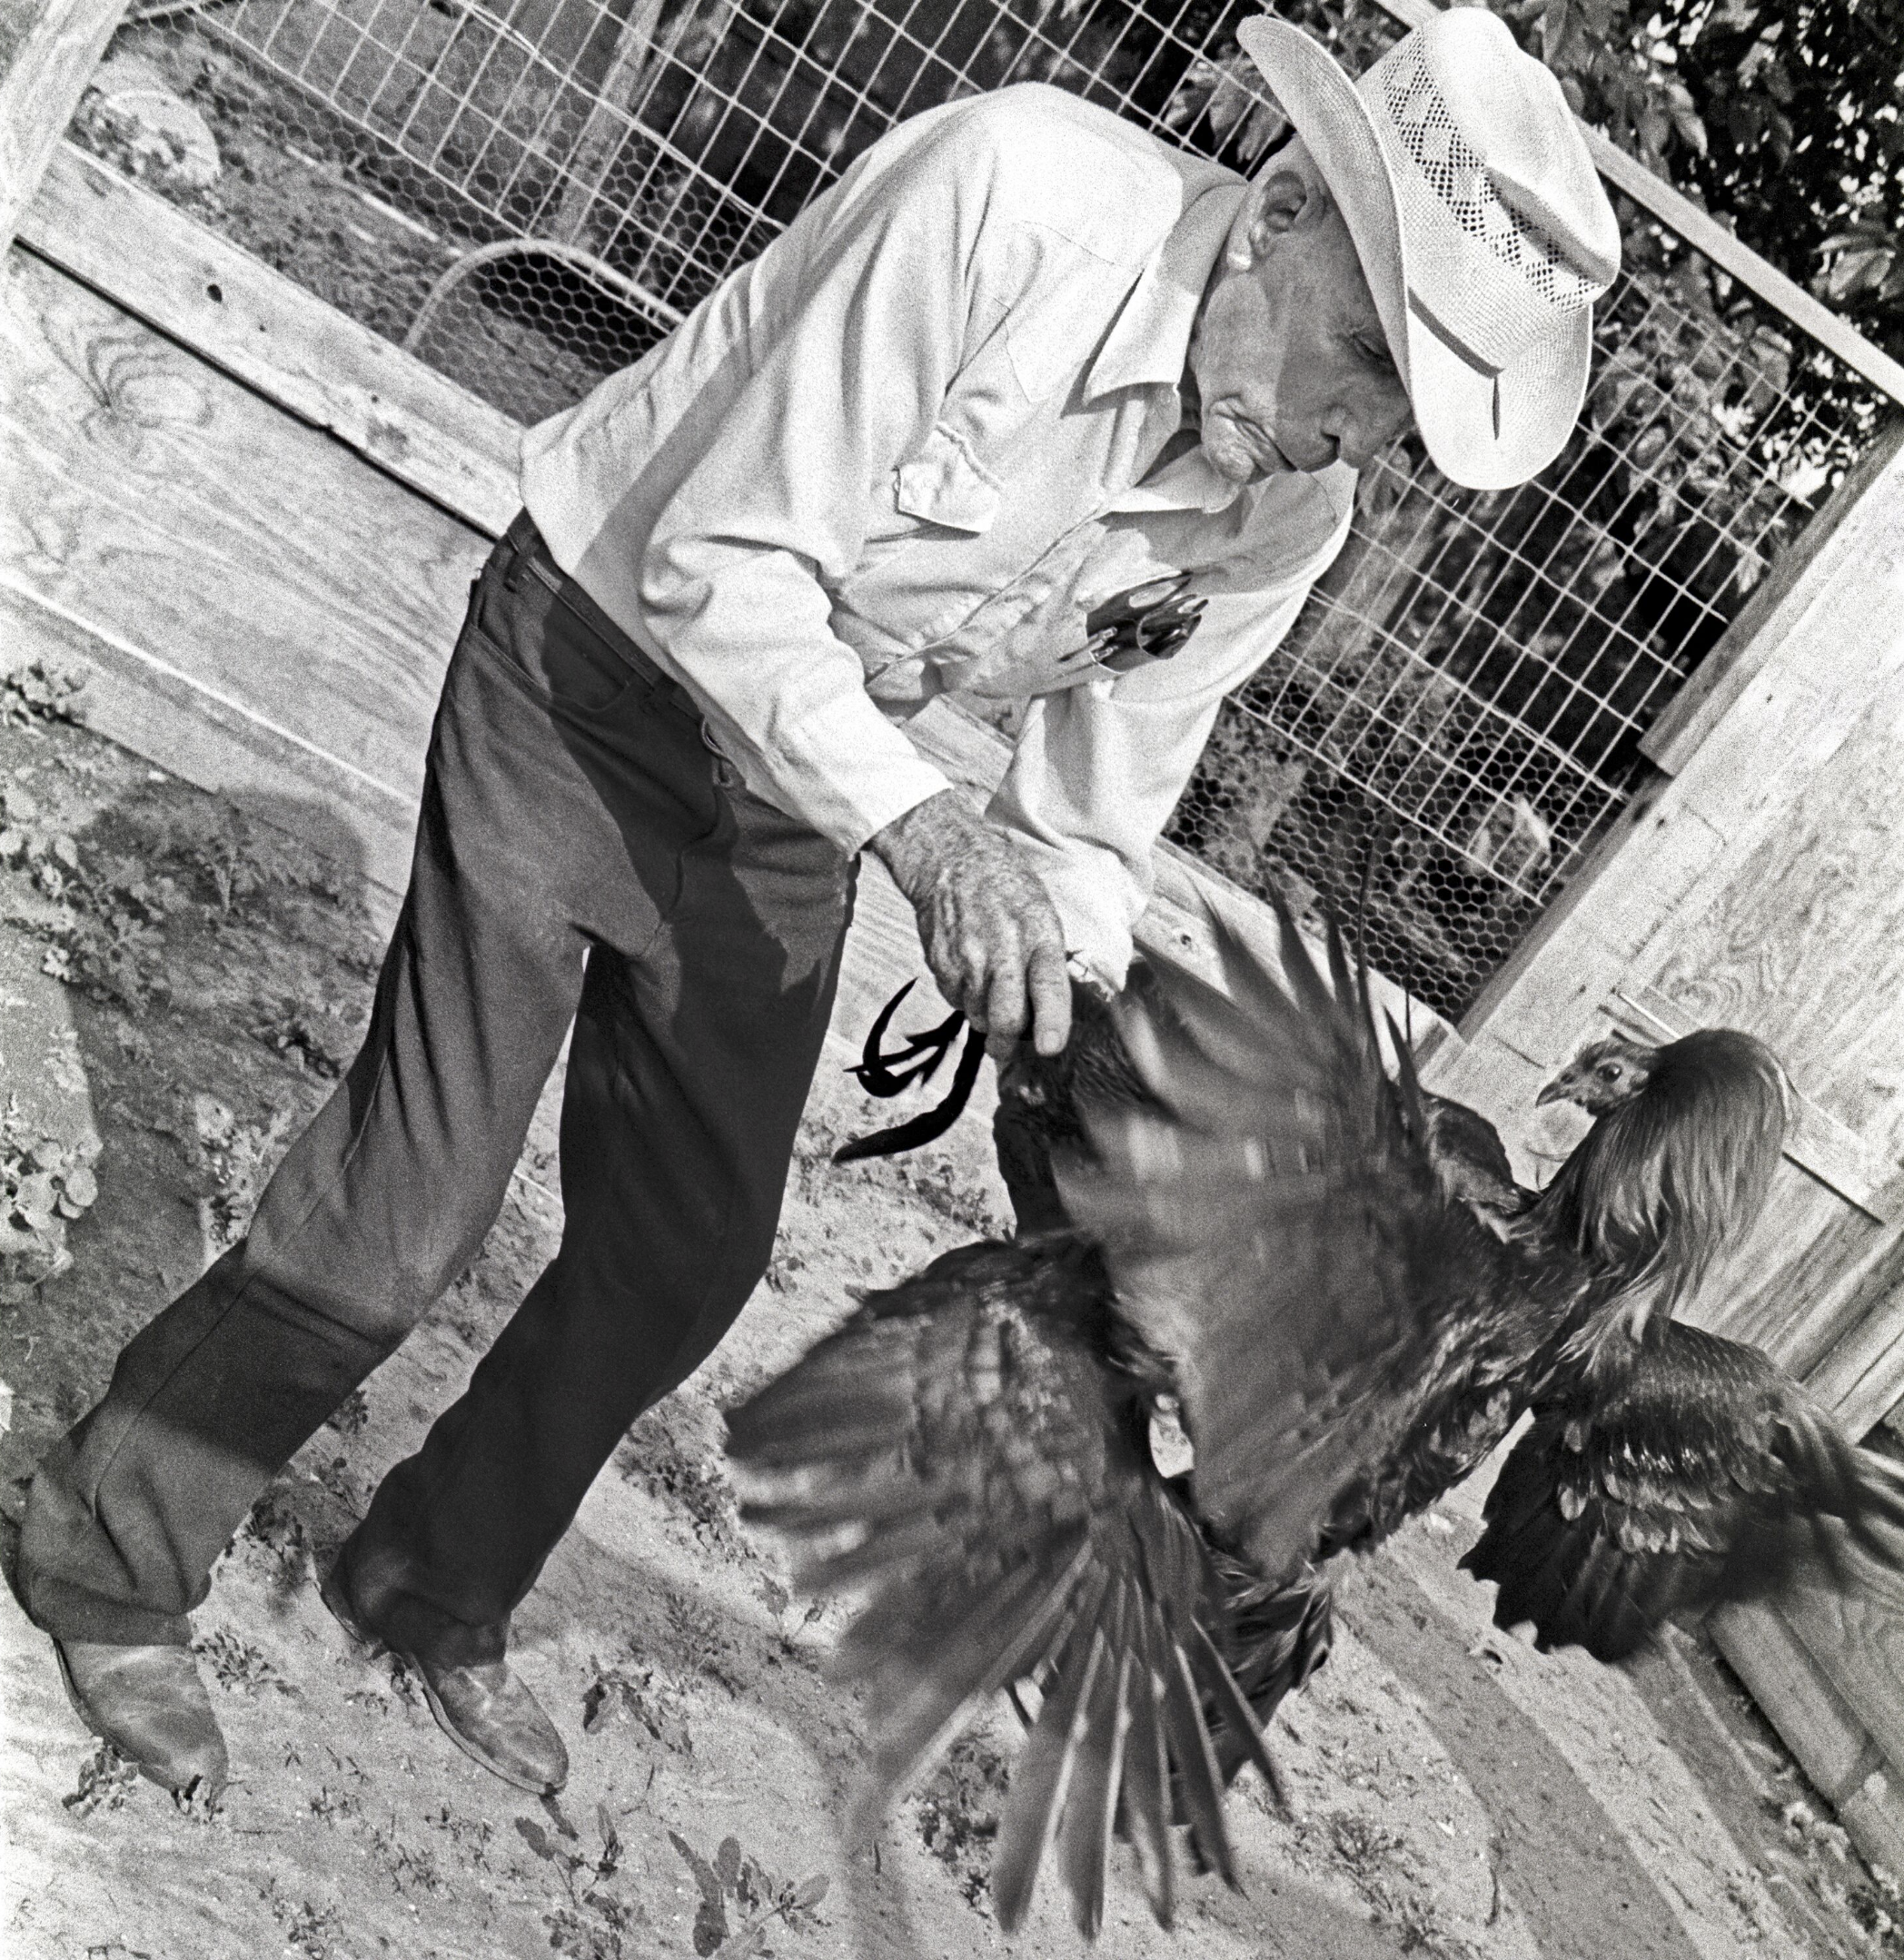 Man Holding Fighting Cock, Webb County, Texas, 1994